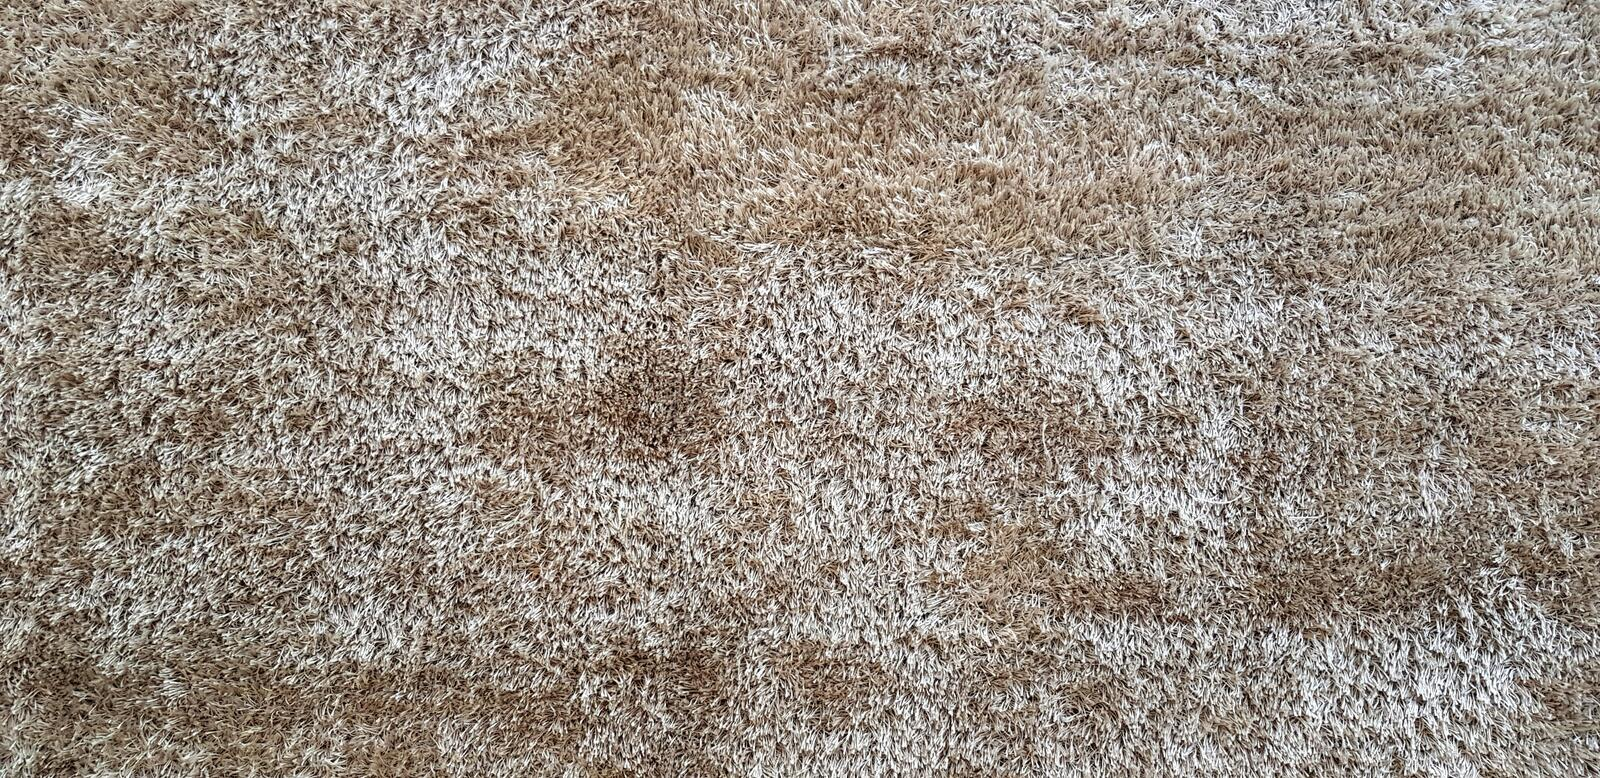 Light Brown Wool Carpet Or Rug For Background Or Wallpaper Stock Image Image Of Nature Soft 167316995